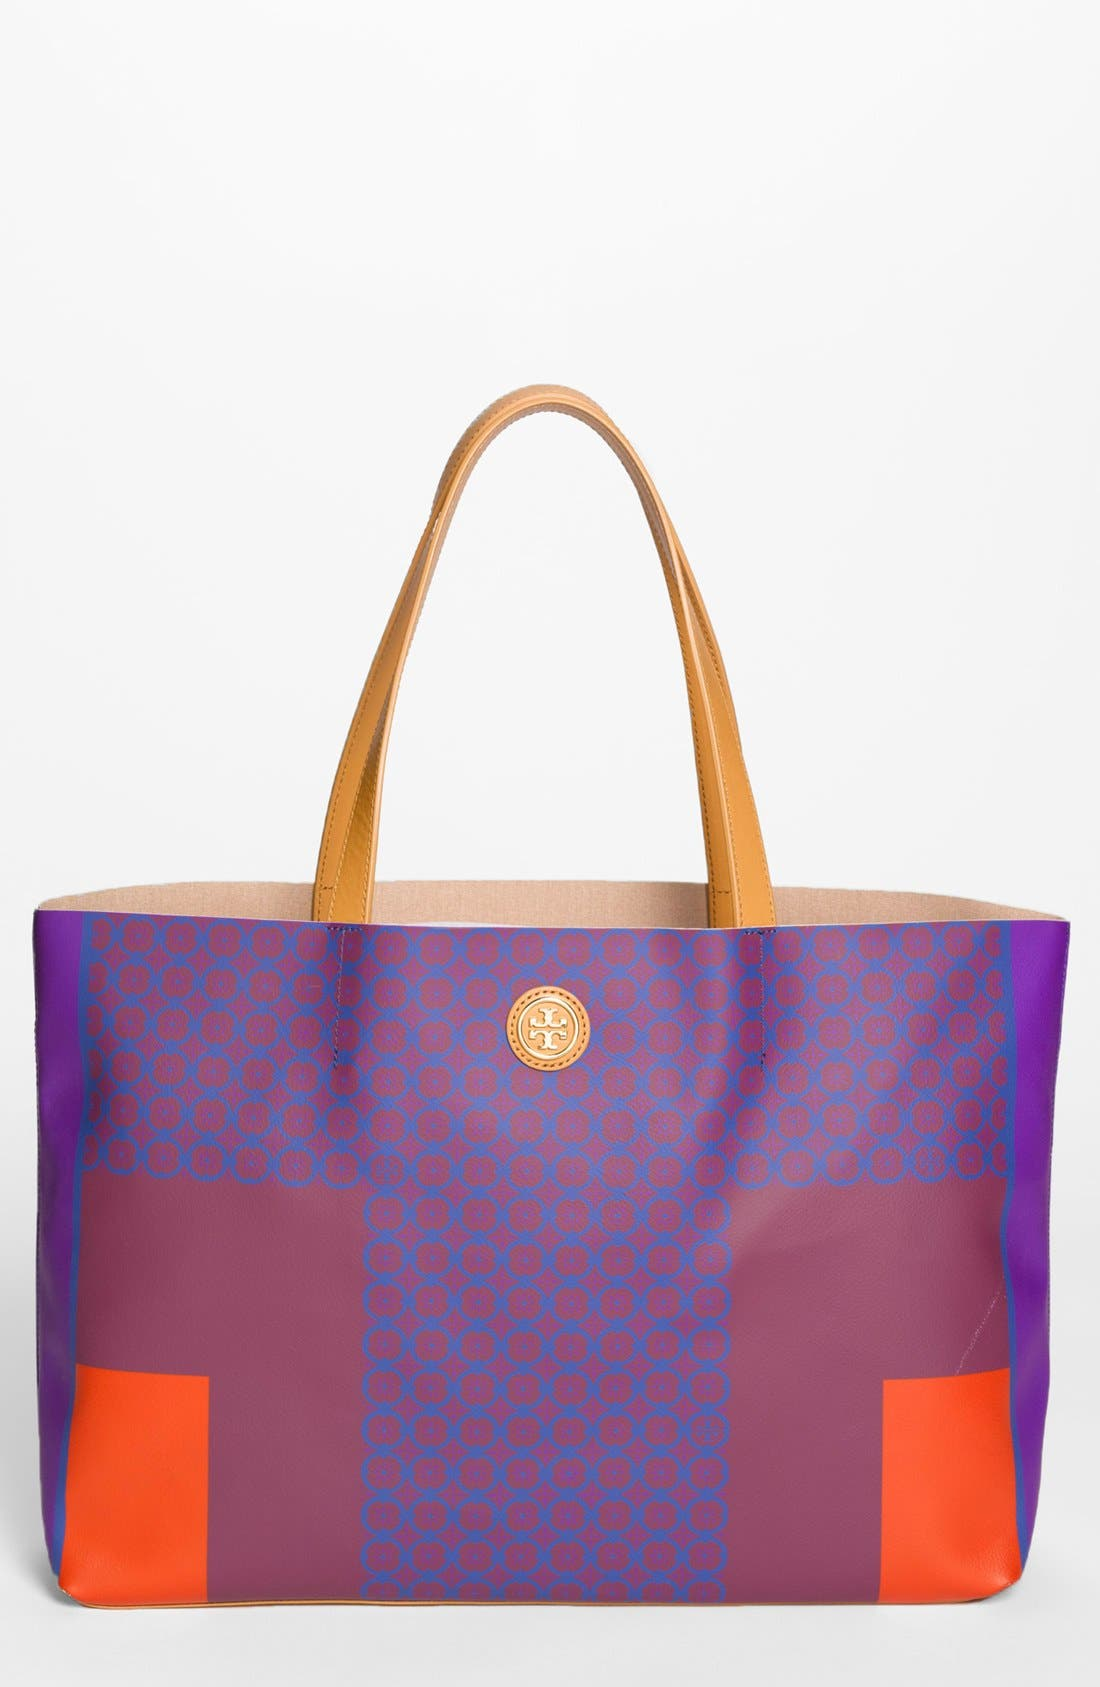 Alternate Image 1 Selected - Tory Burch 'Halland' Tote